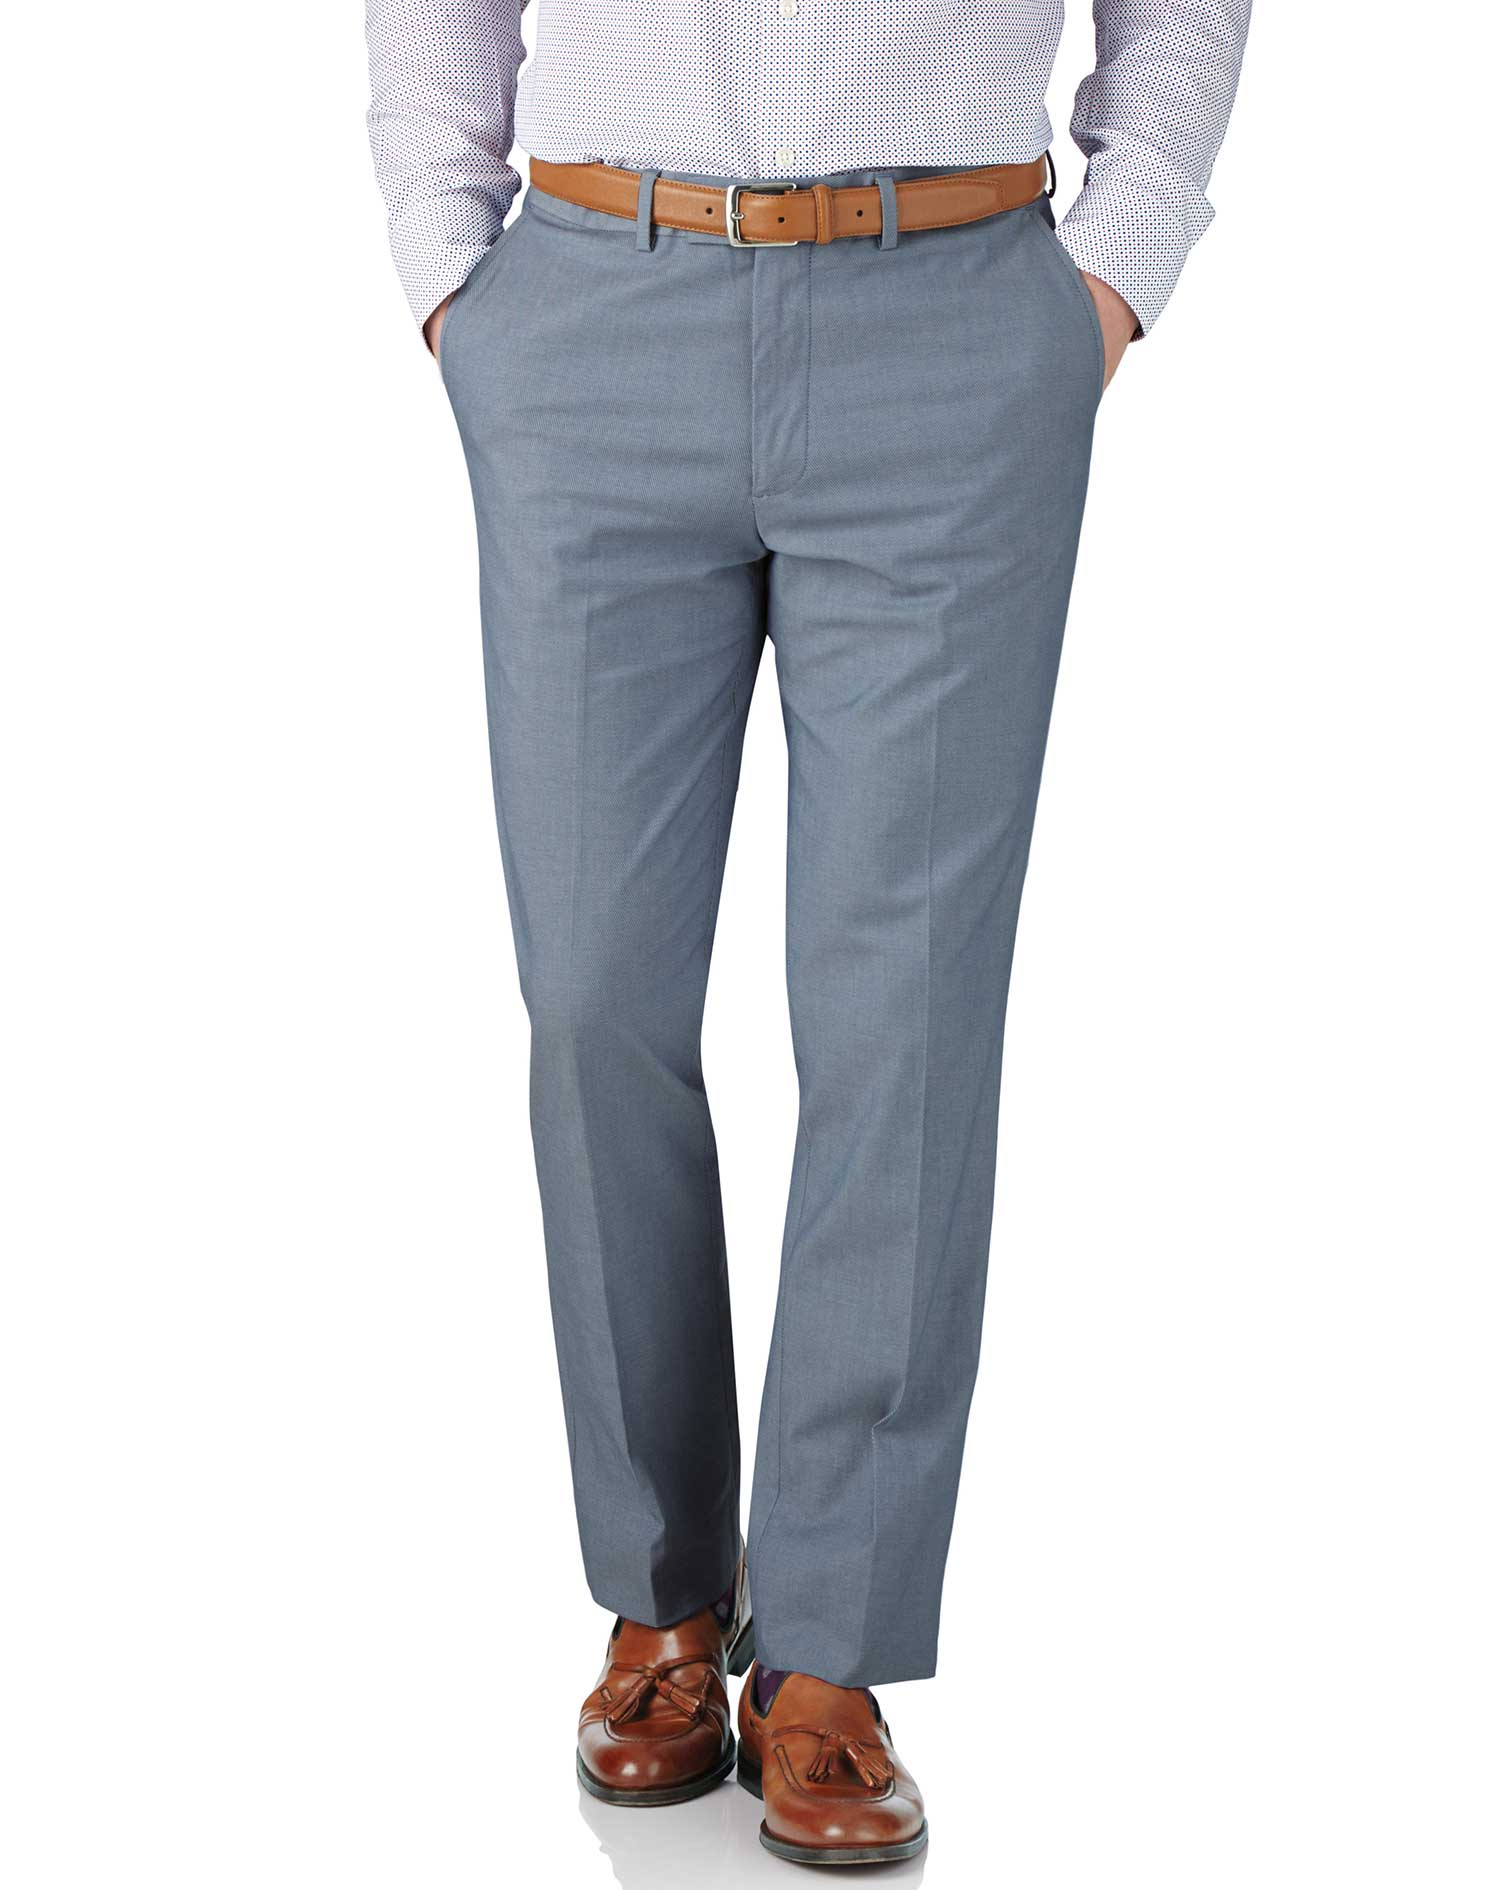 Blue Chambray Slim Fit Stretch Cavalry Twill Trousers Size W38 L34 by Charles Tyrwhitt